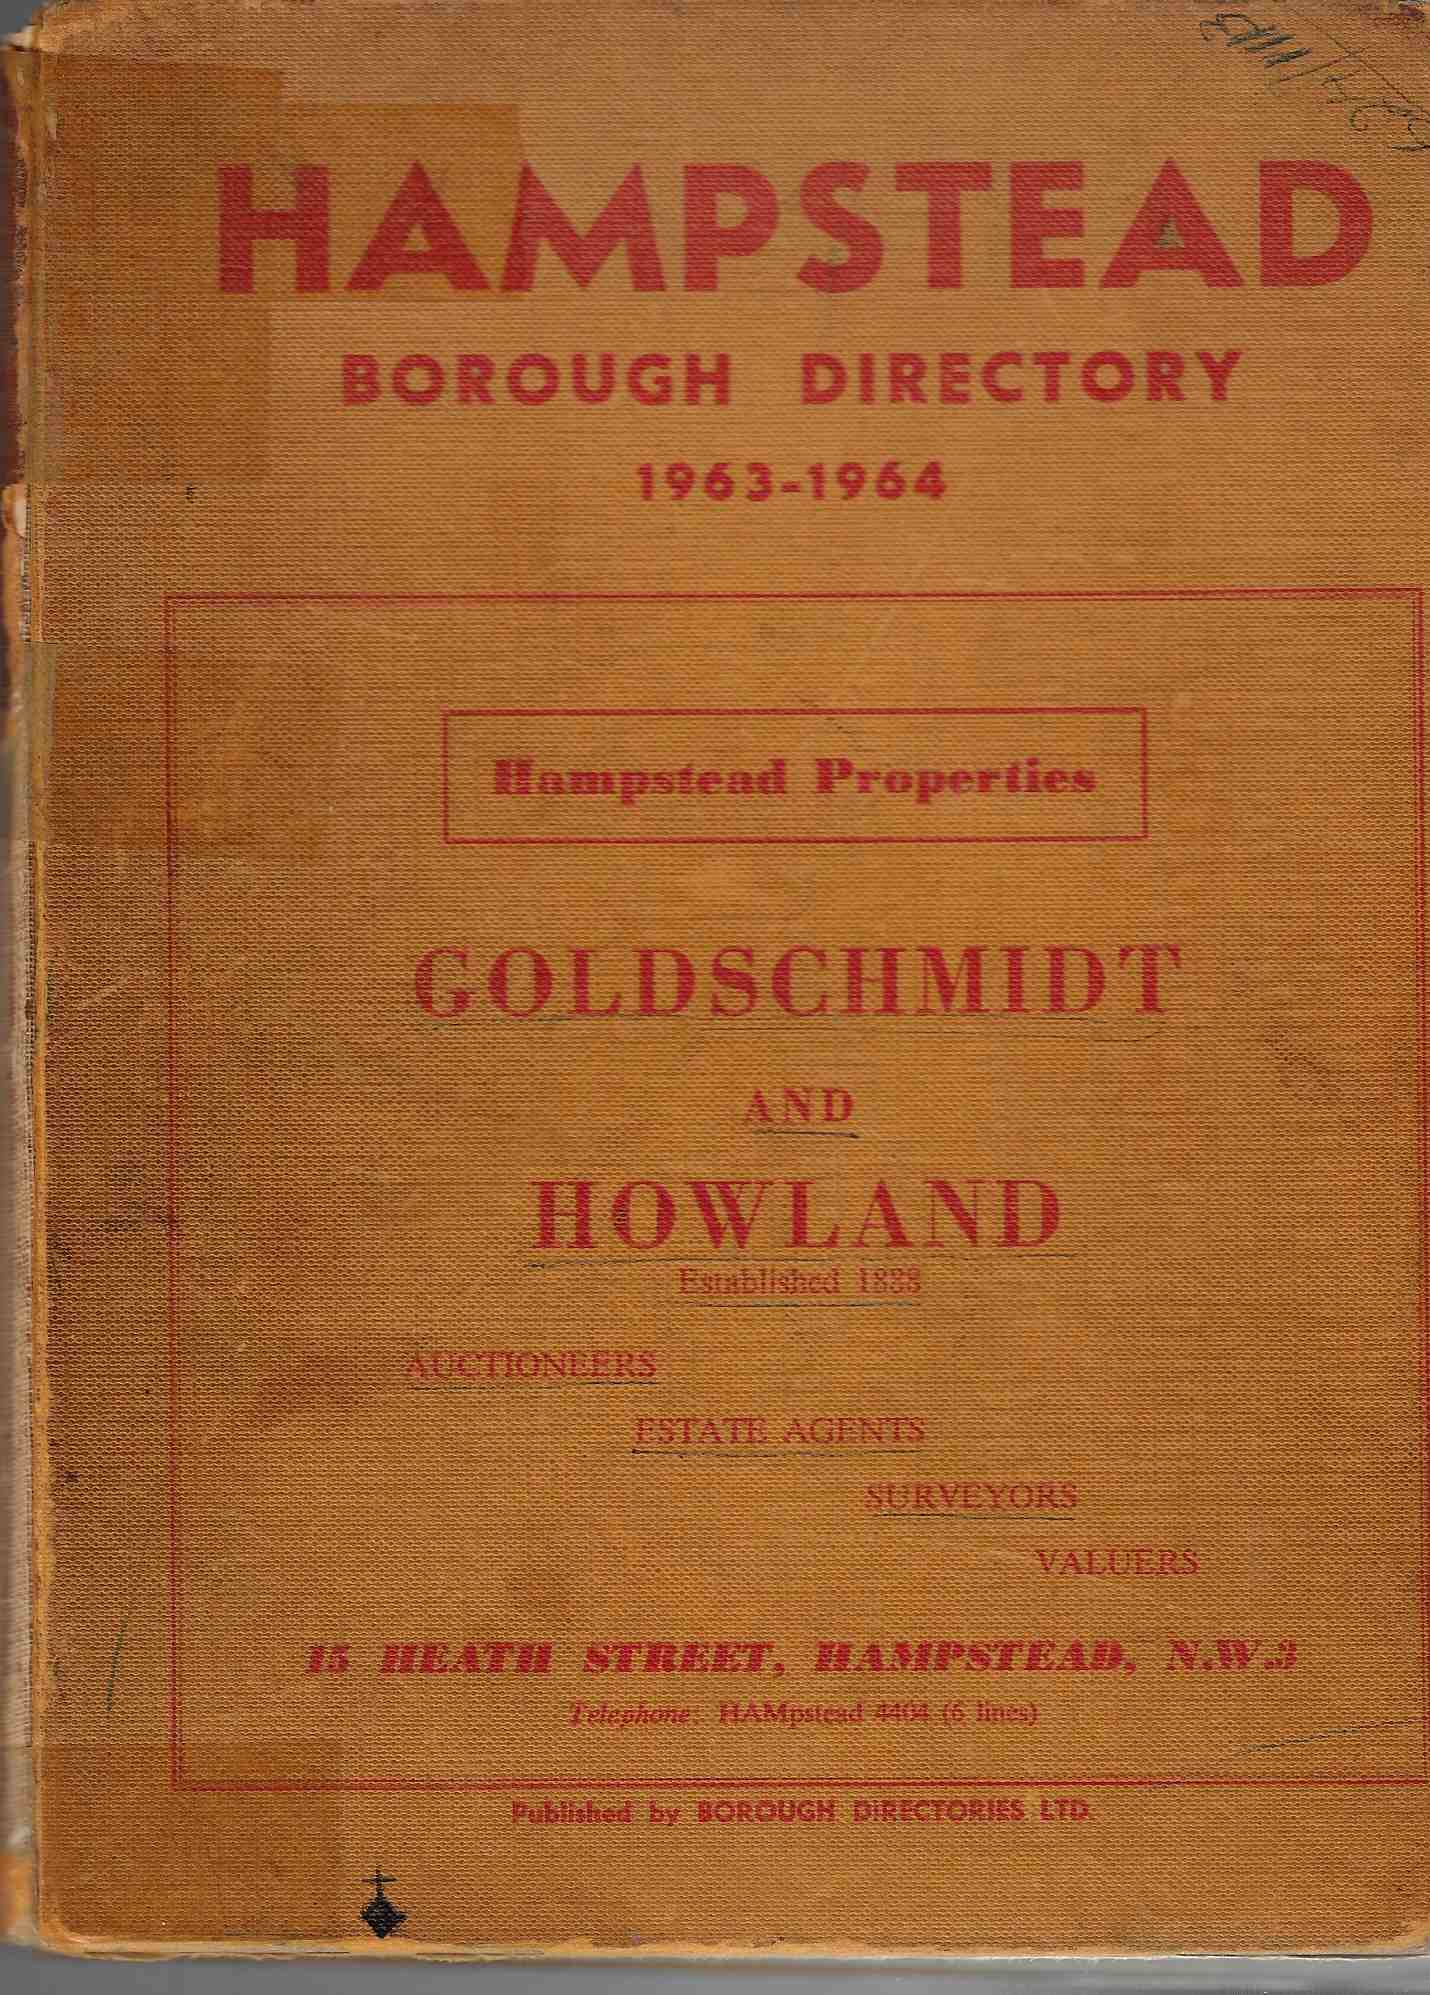 Image for Hampstead Borough Directory 1963-1964